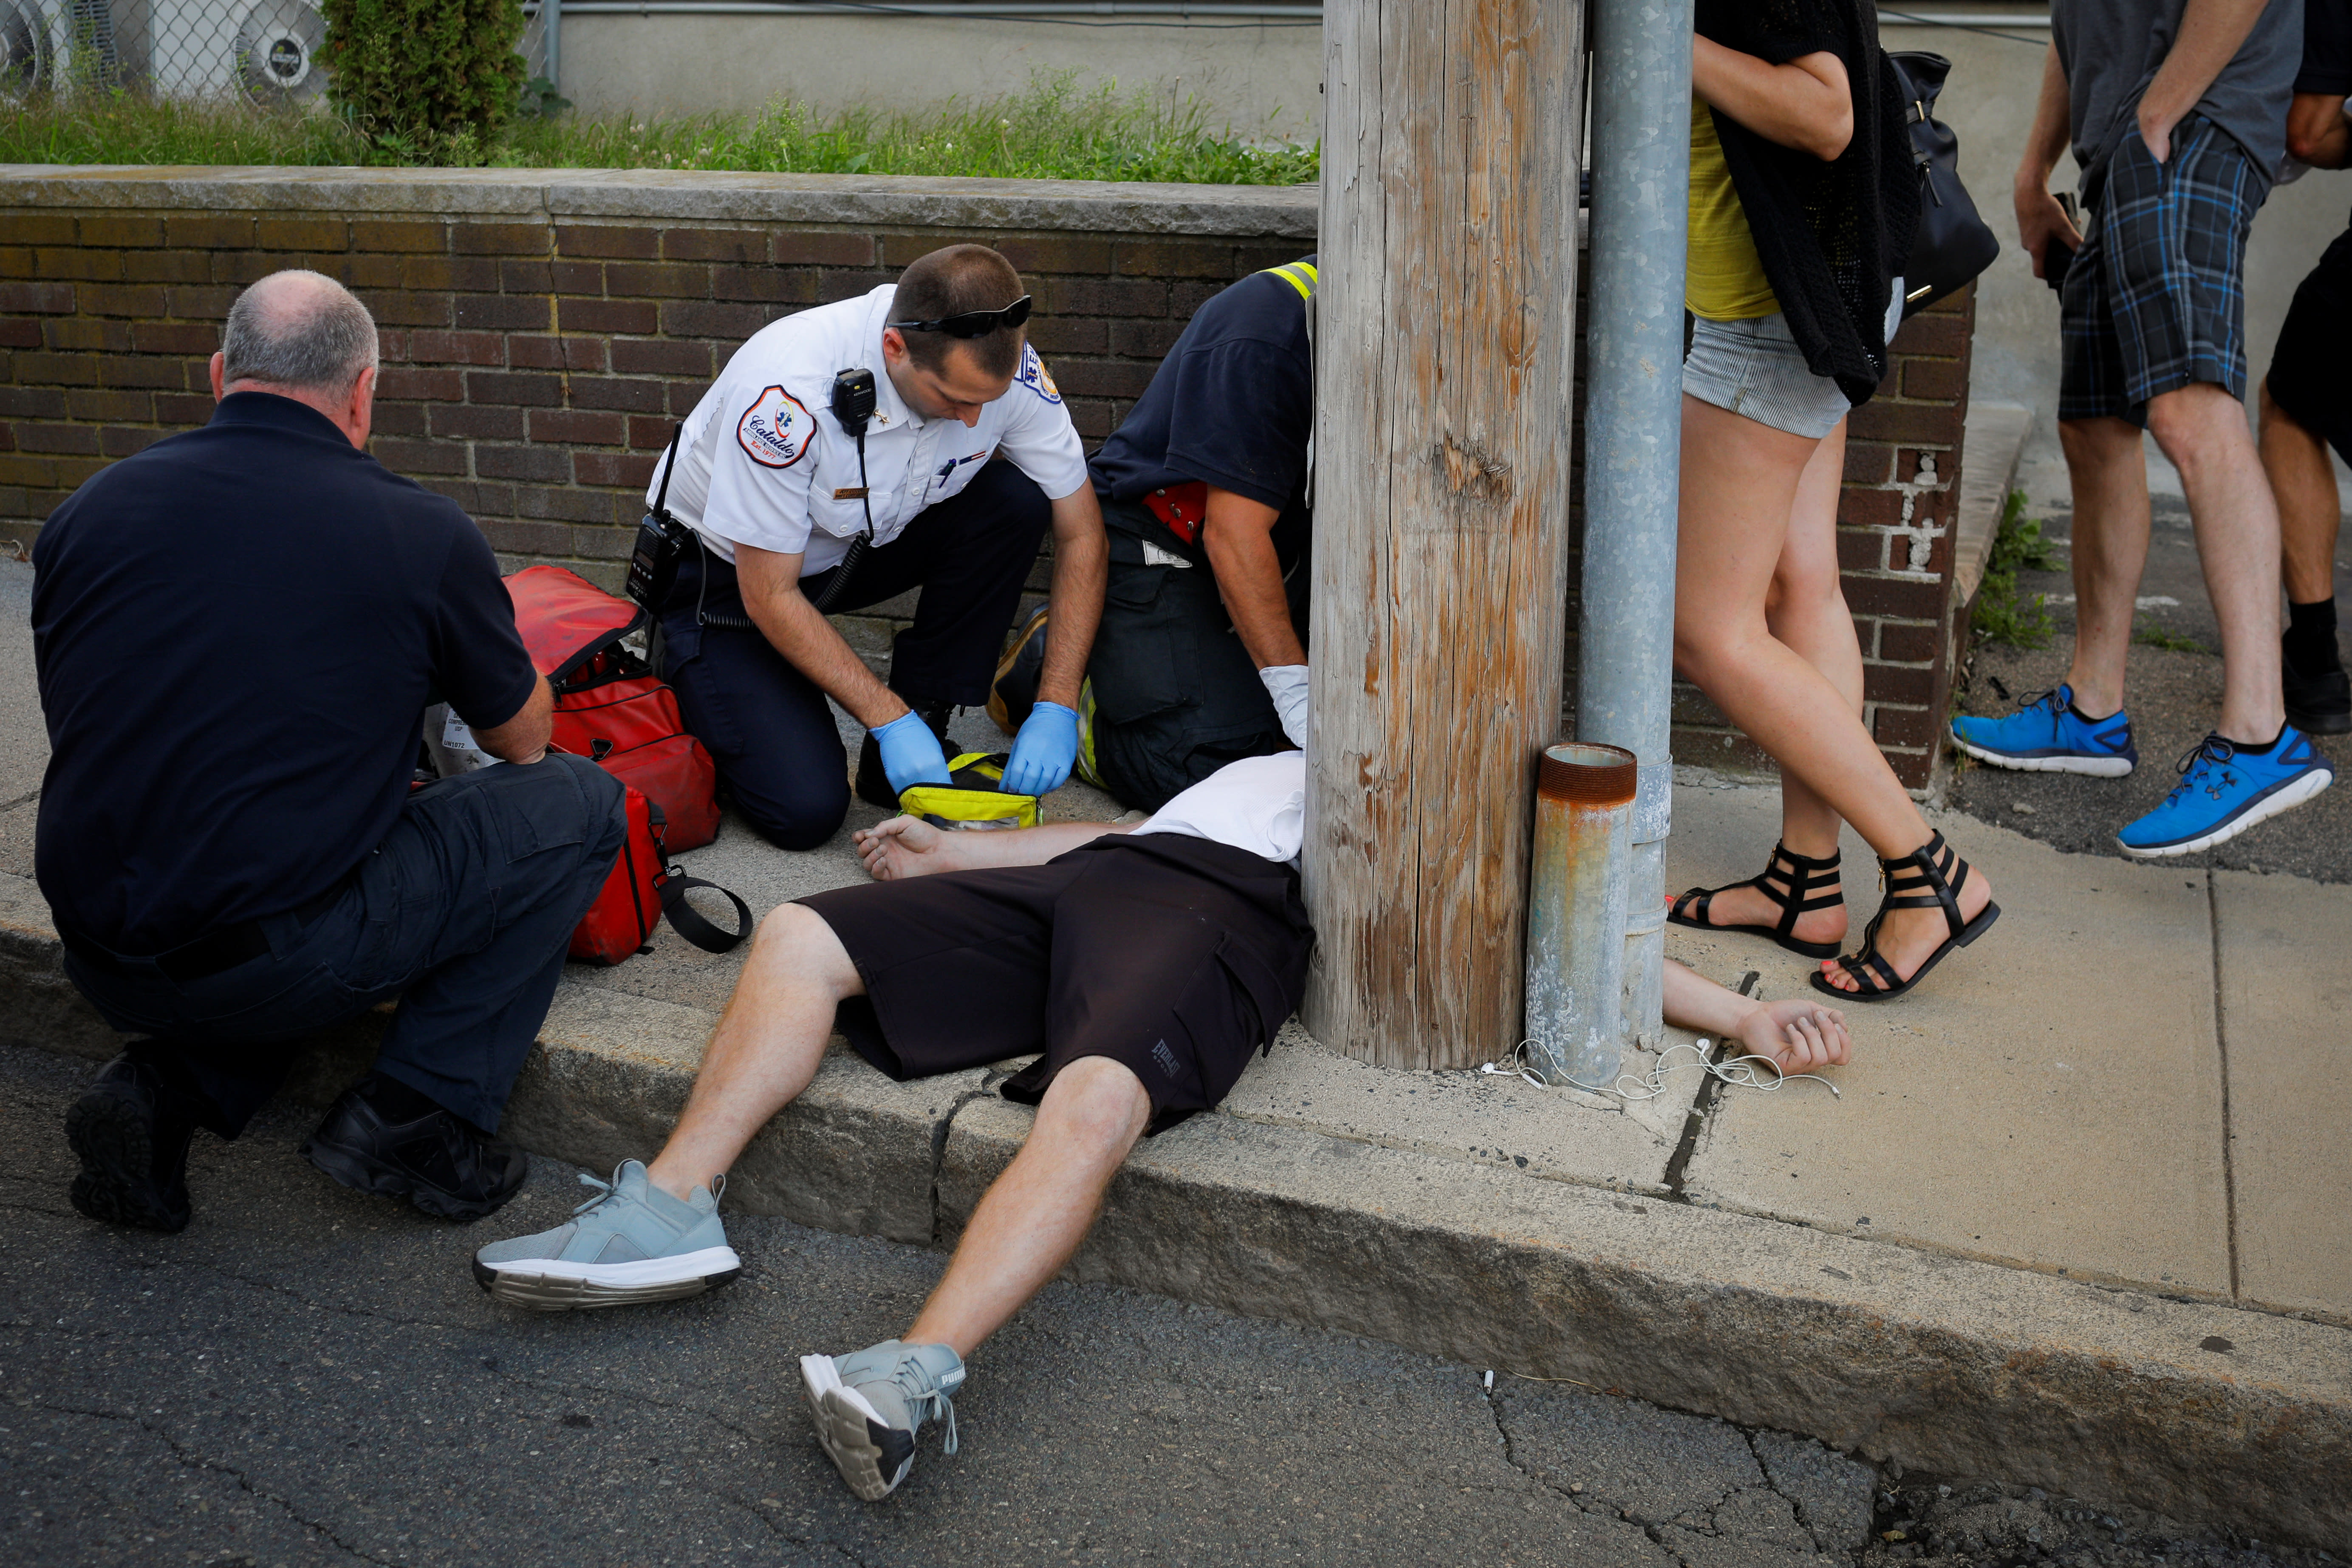 Cataldo Ambulance medics and other first responders revive a 32-year-old man who was found unresponsive and not breathing after an opioid overdose on a sidewalk in the Boston suburb of Everett, Massachusetts, U.S., August 23, 2017. (REUTERS/BRIAN SNYDER)